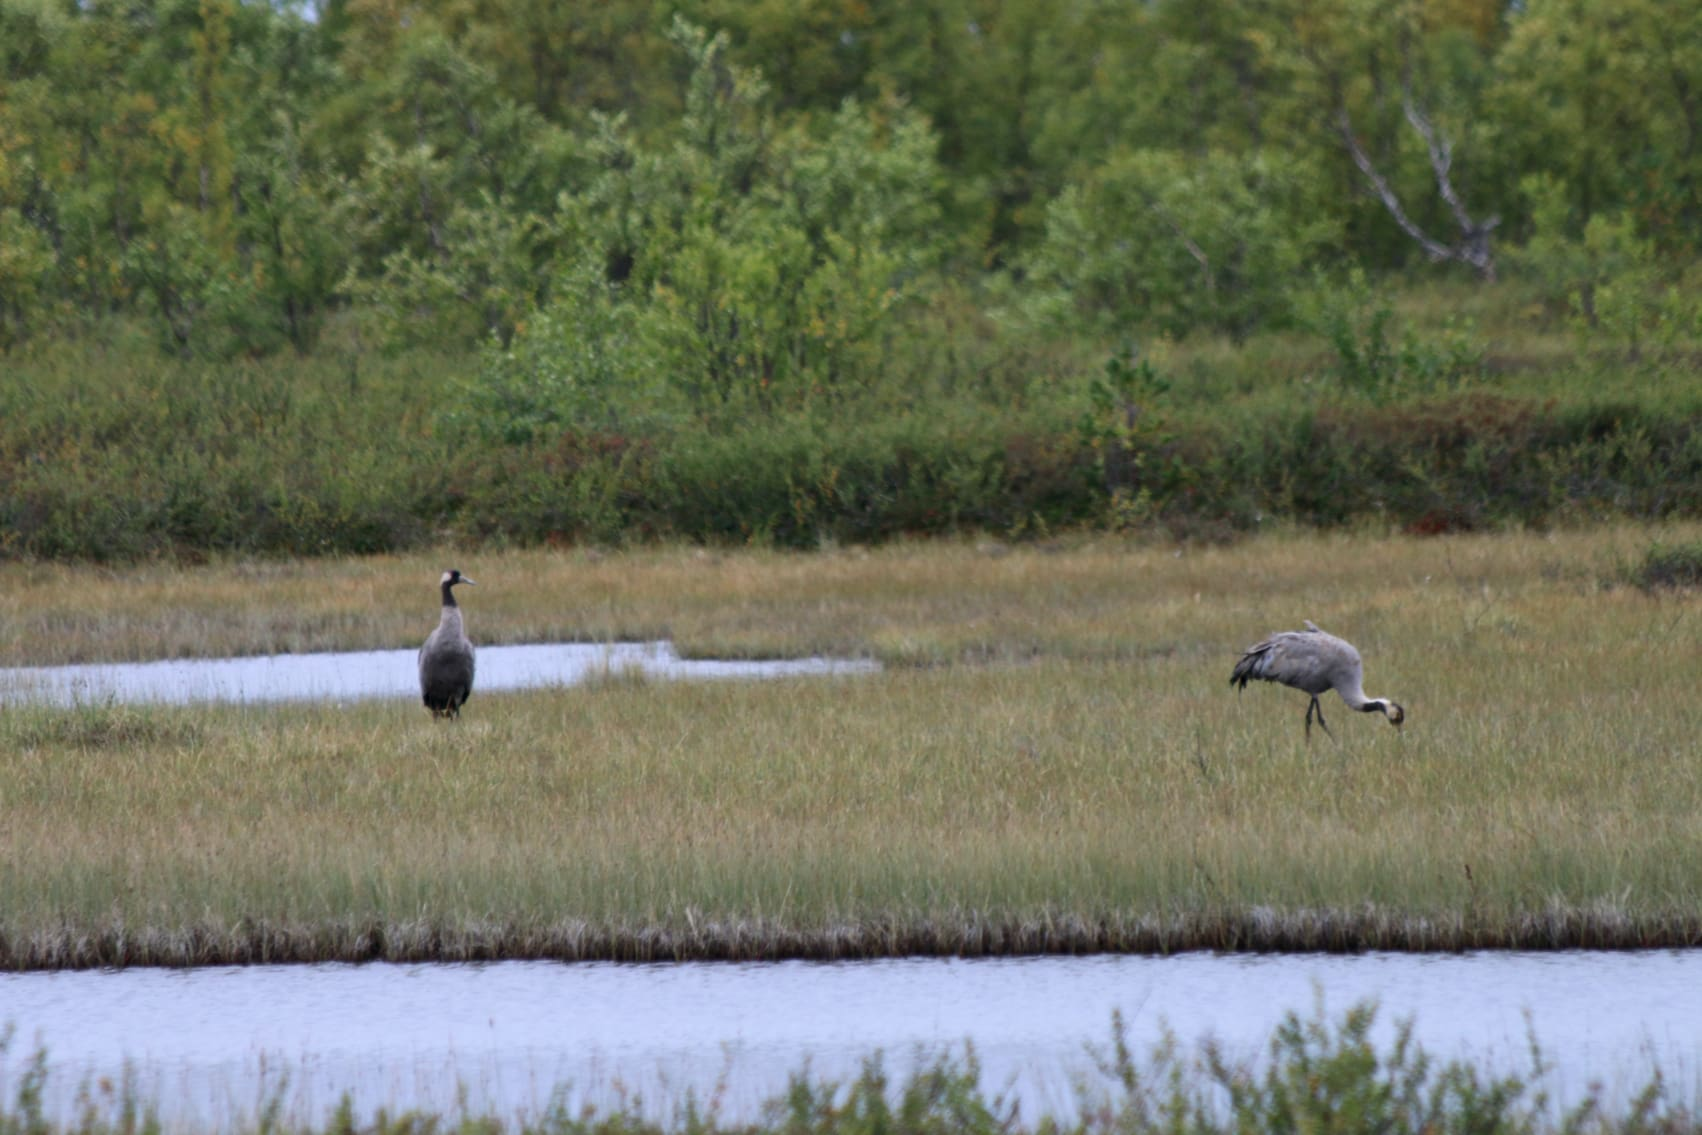 Cranes usually live in wet areas.